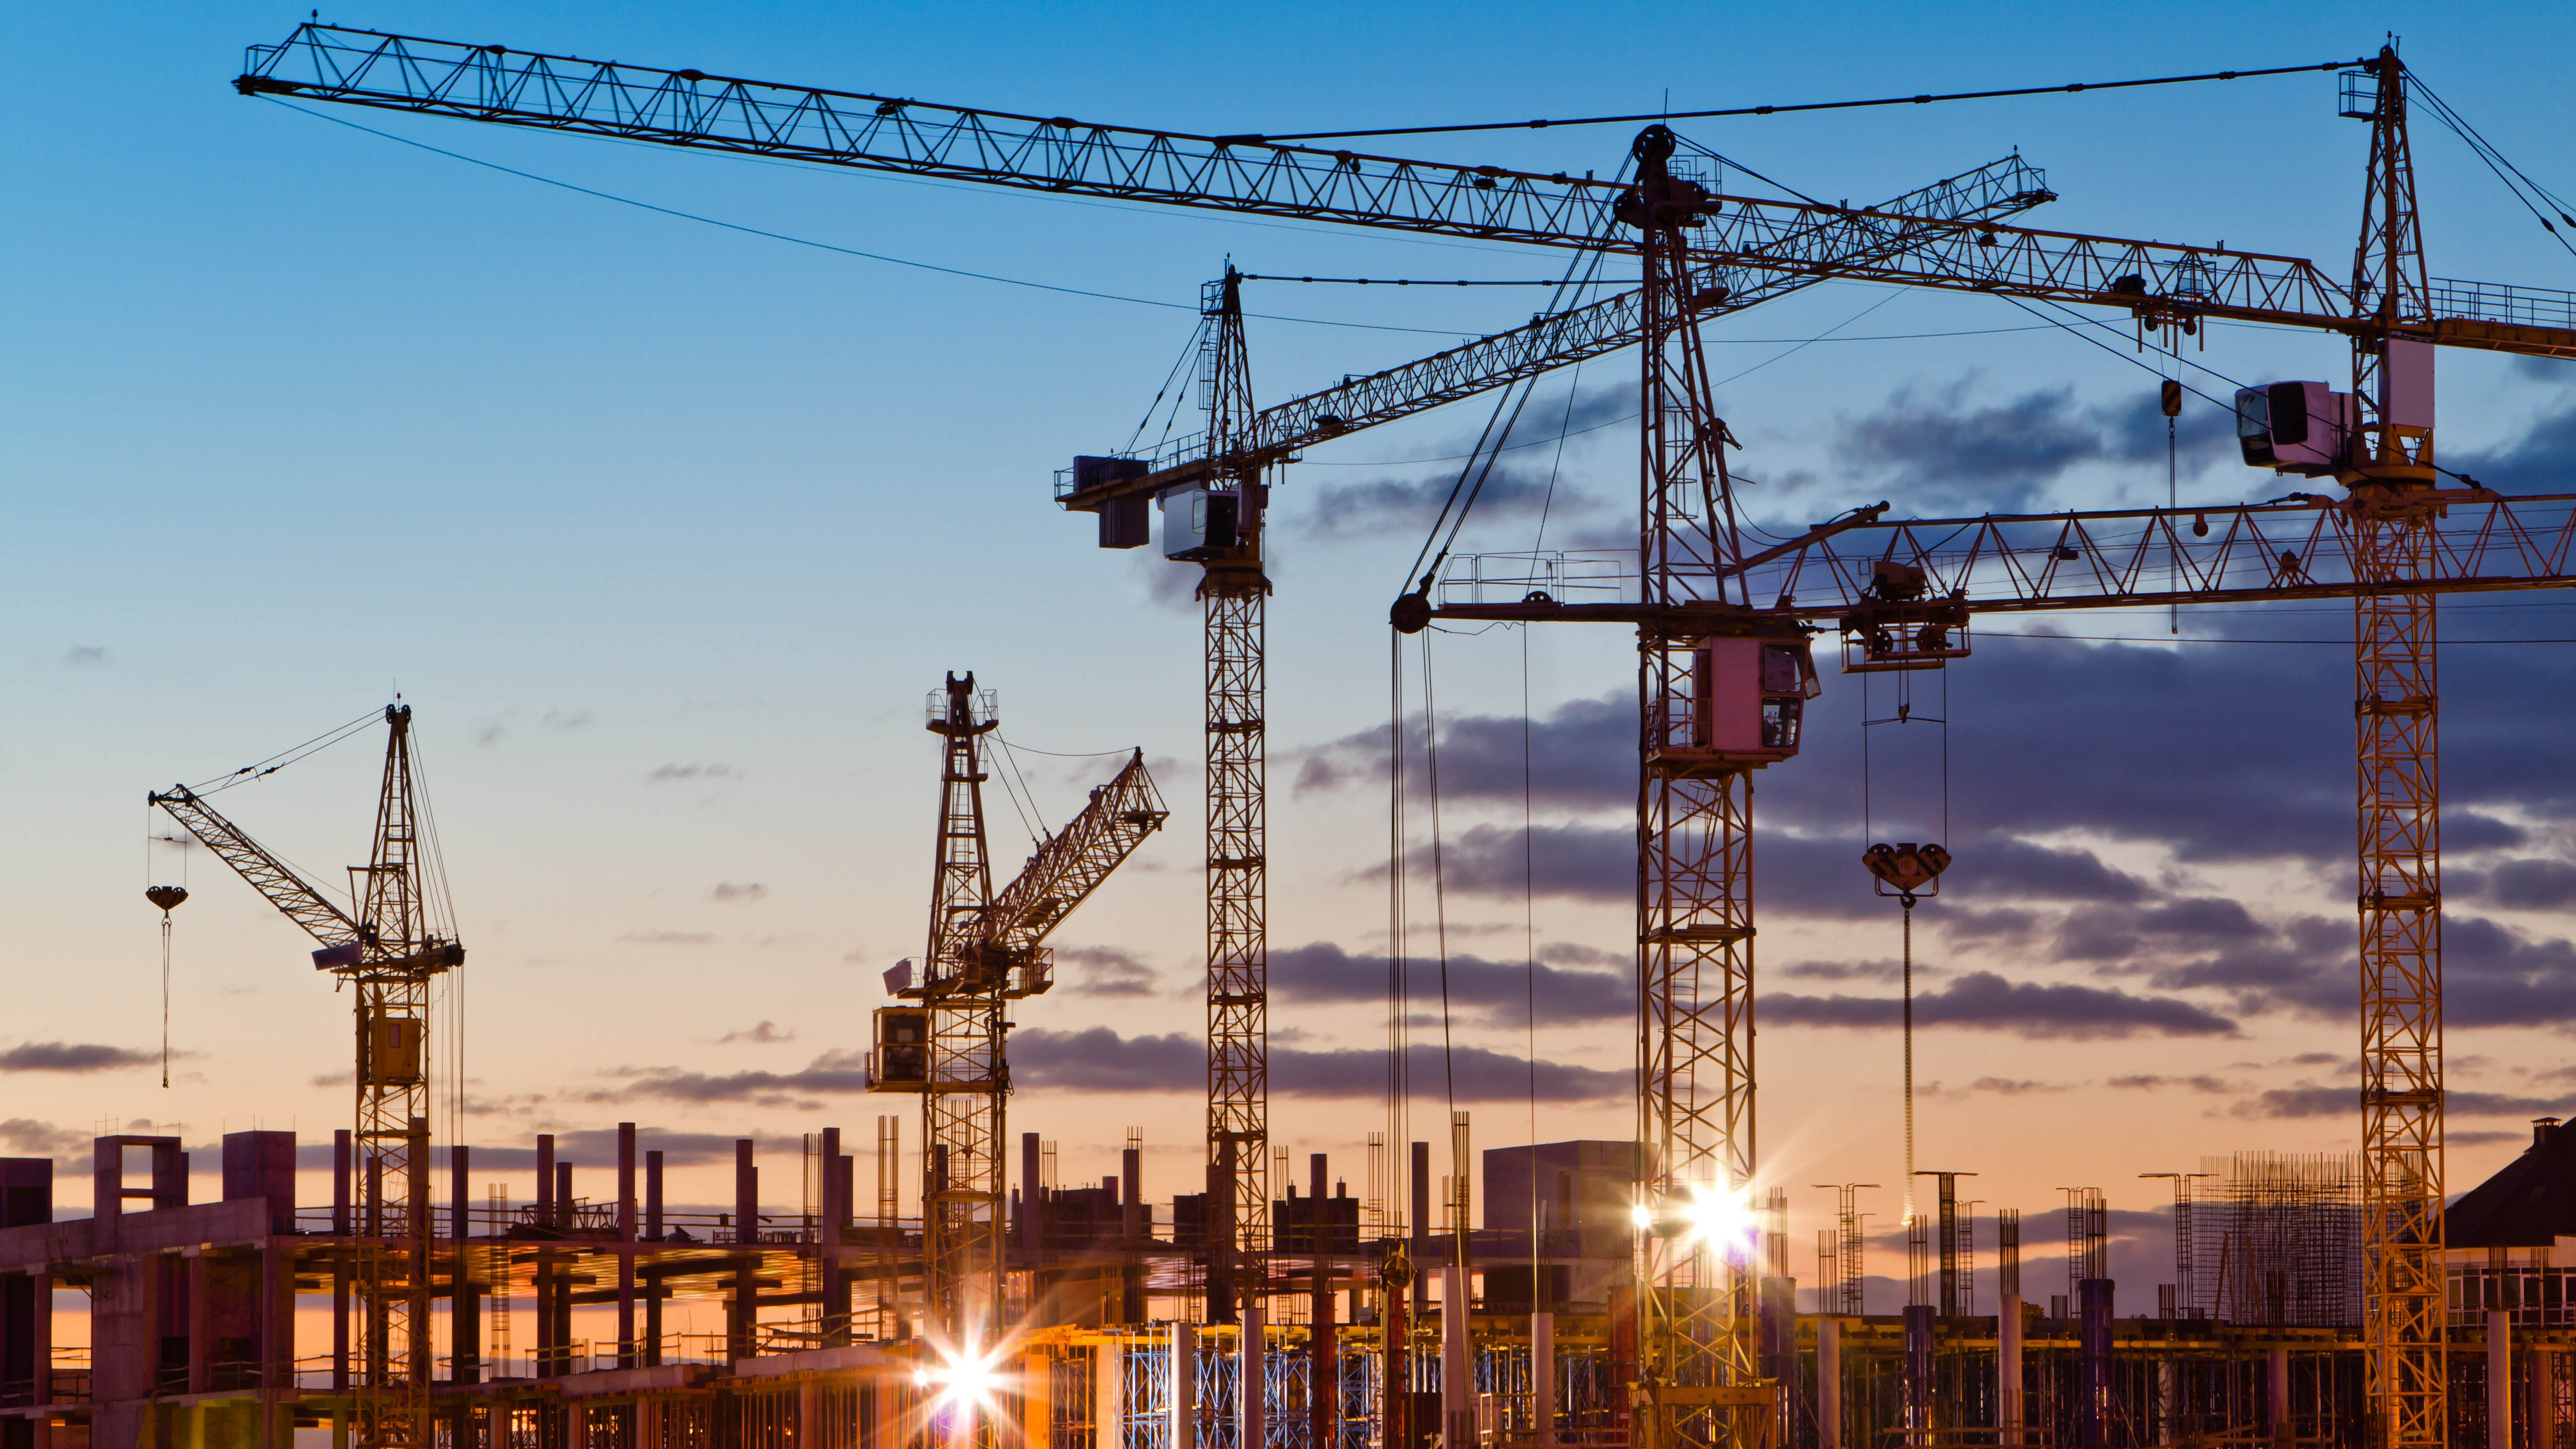 Is the construction industry on the rise or in decline?